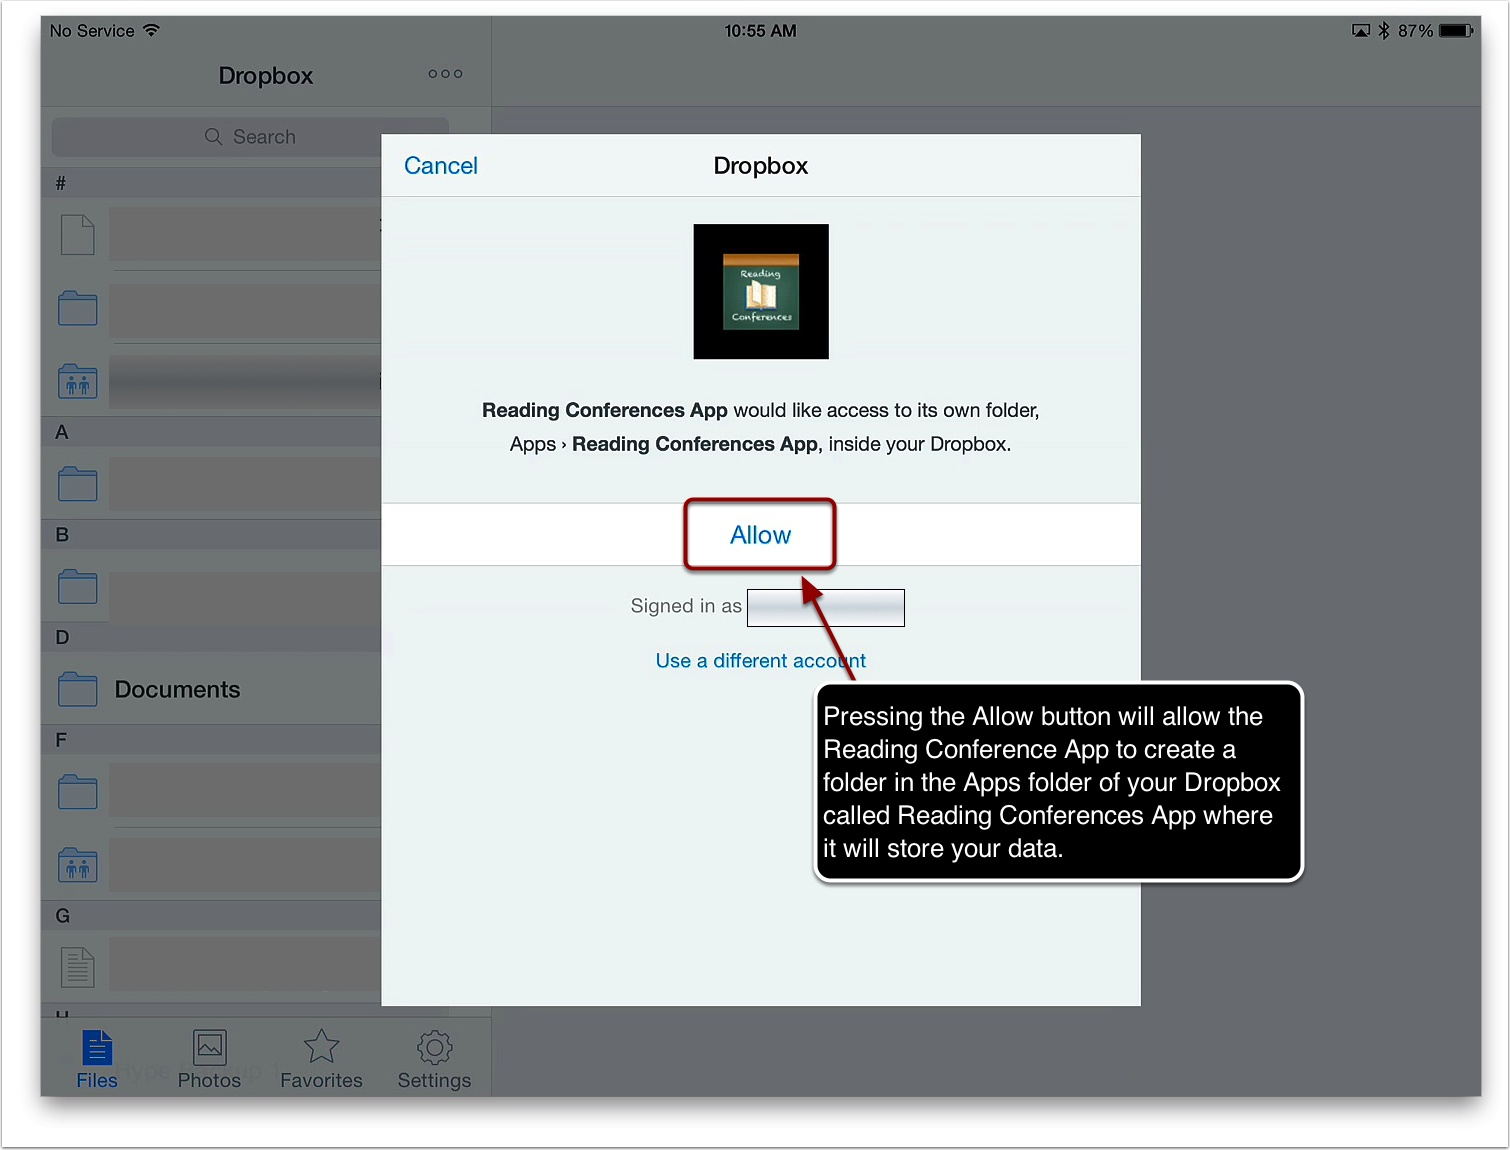 4. Dropbox will ask you to allow the Reading Conferences App to create a folder in the Apps folder of your Dropbox called Reading Conferences App where it will backup your data. Press the Allow button to give permission for this. You can press the Cancel button to refuse permission.